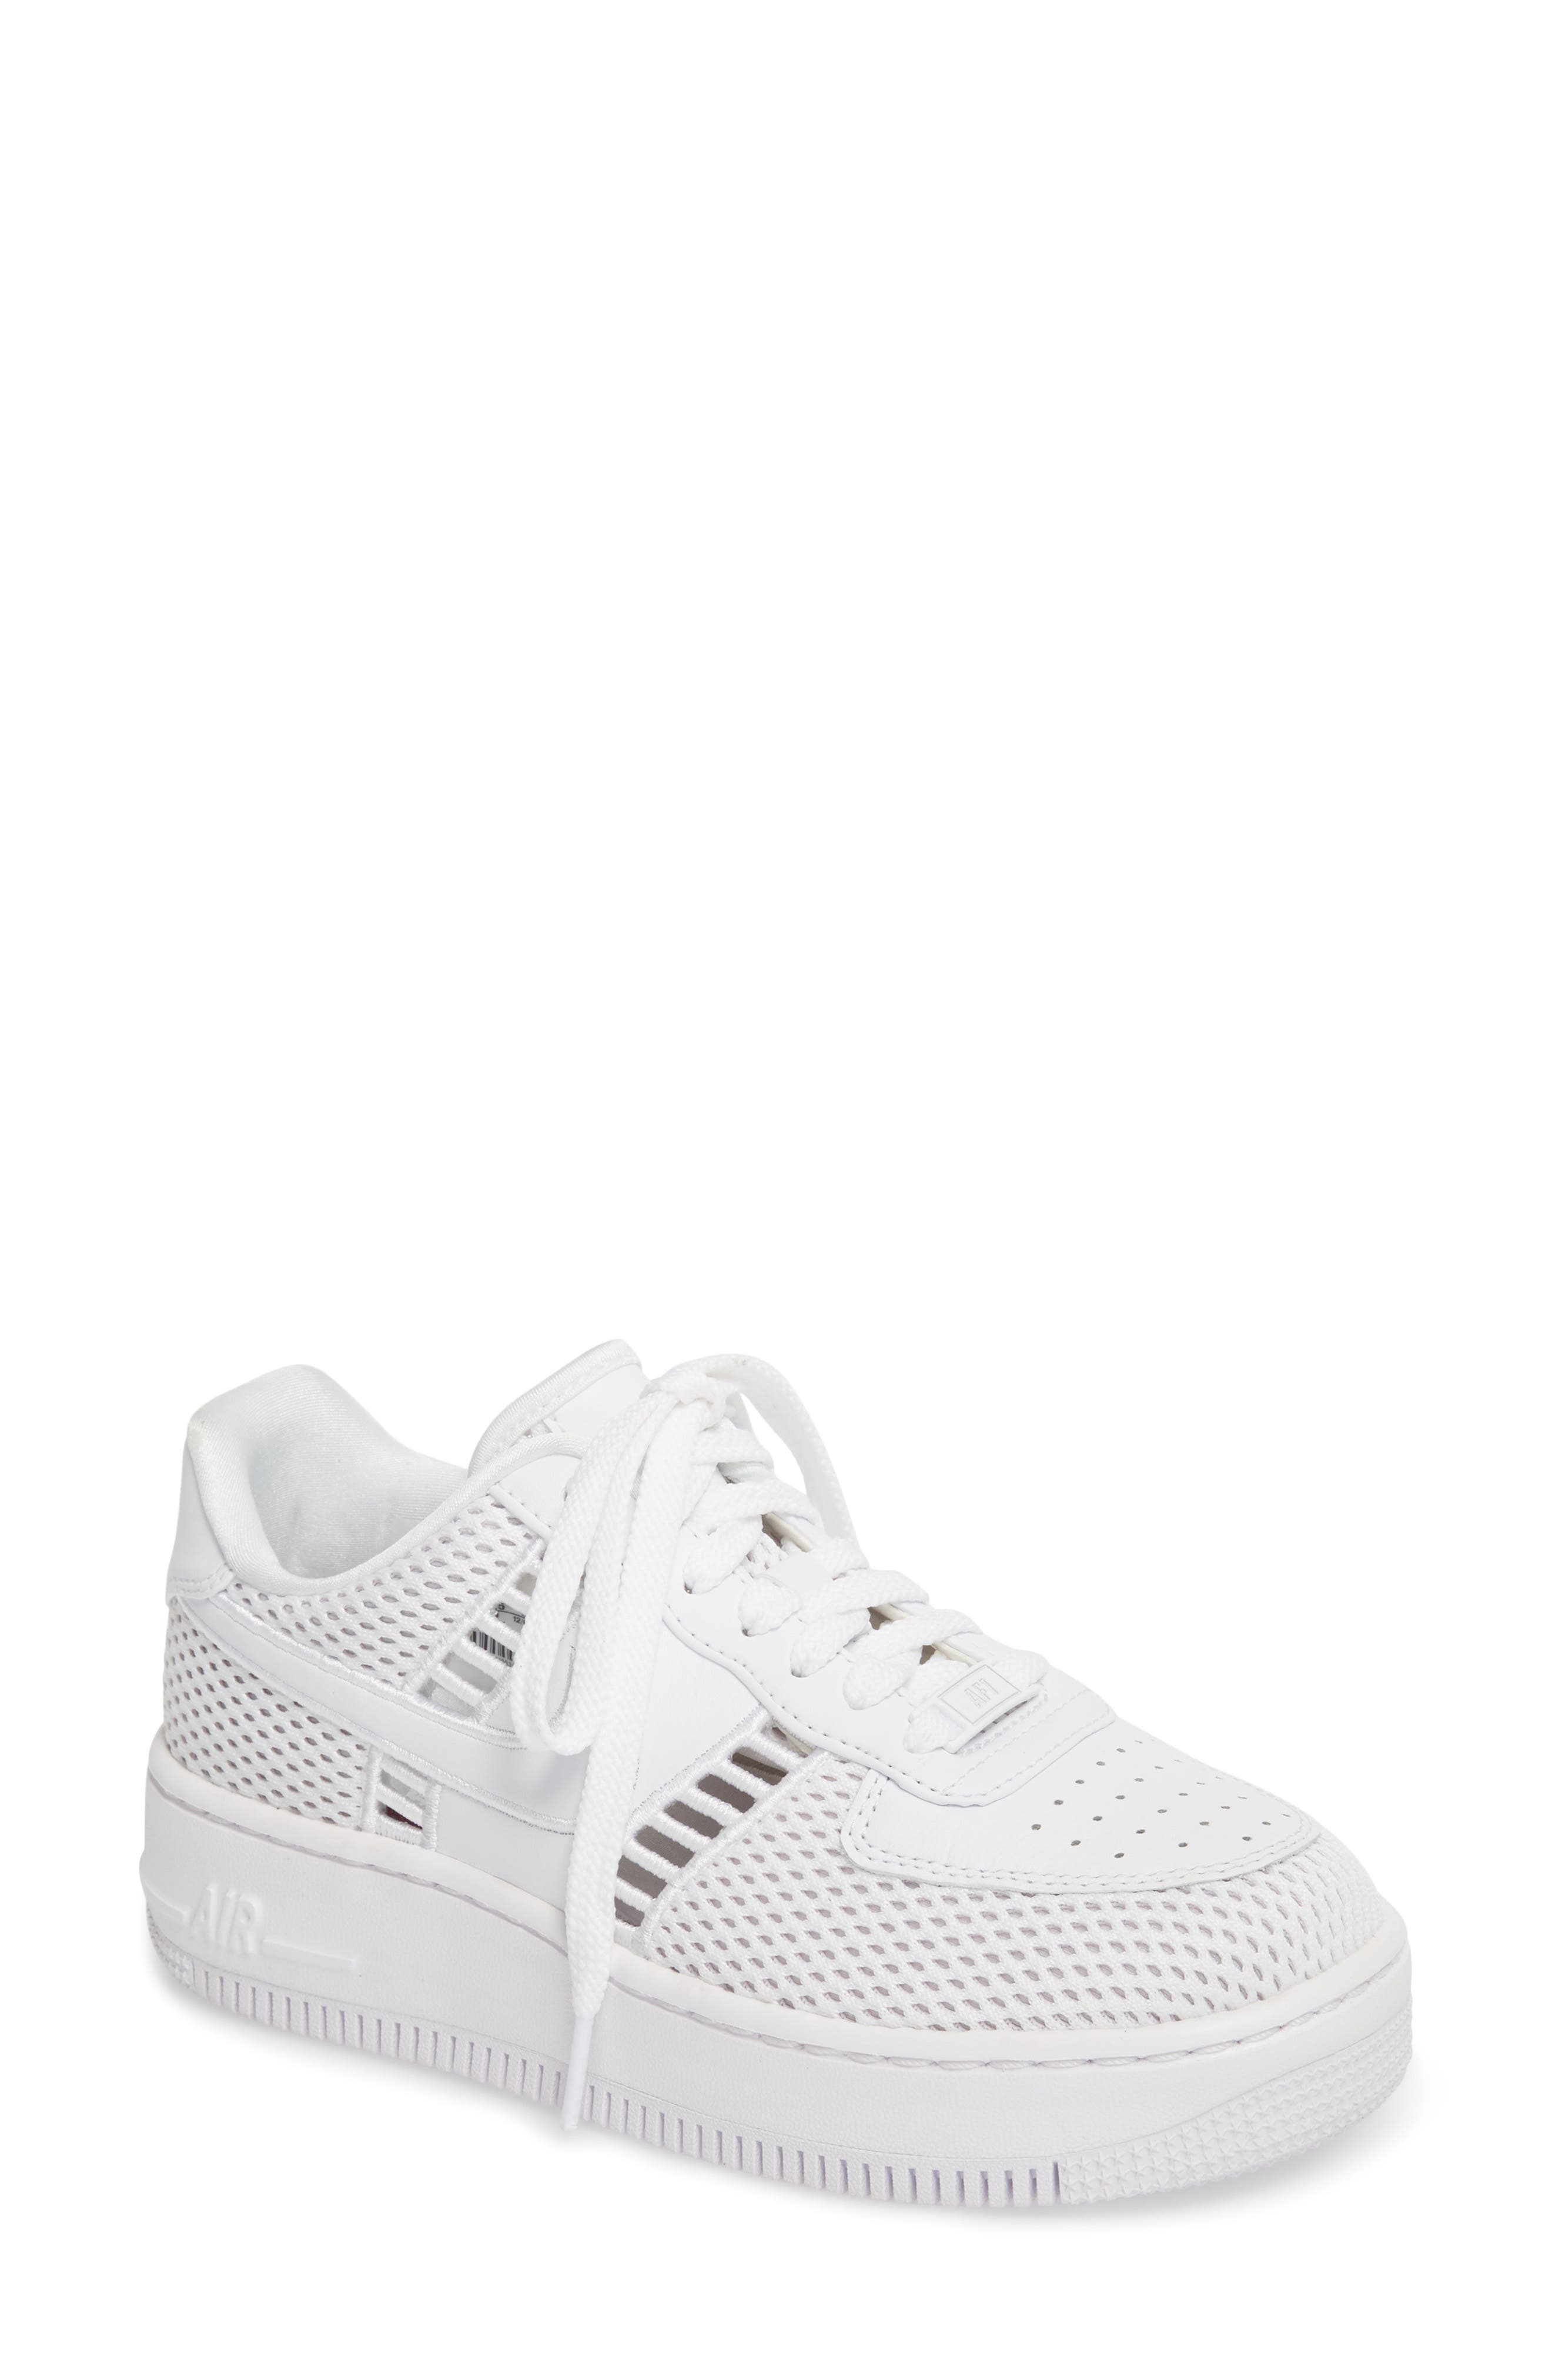 Air Force 1 Upstep SI Mesh Sneaker,                         Main,                         color, 100